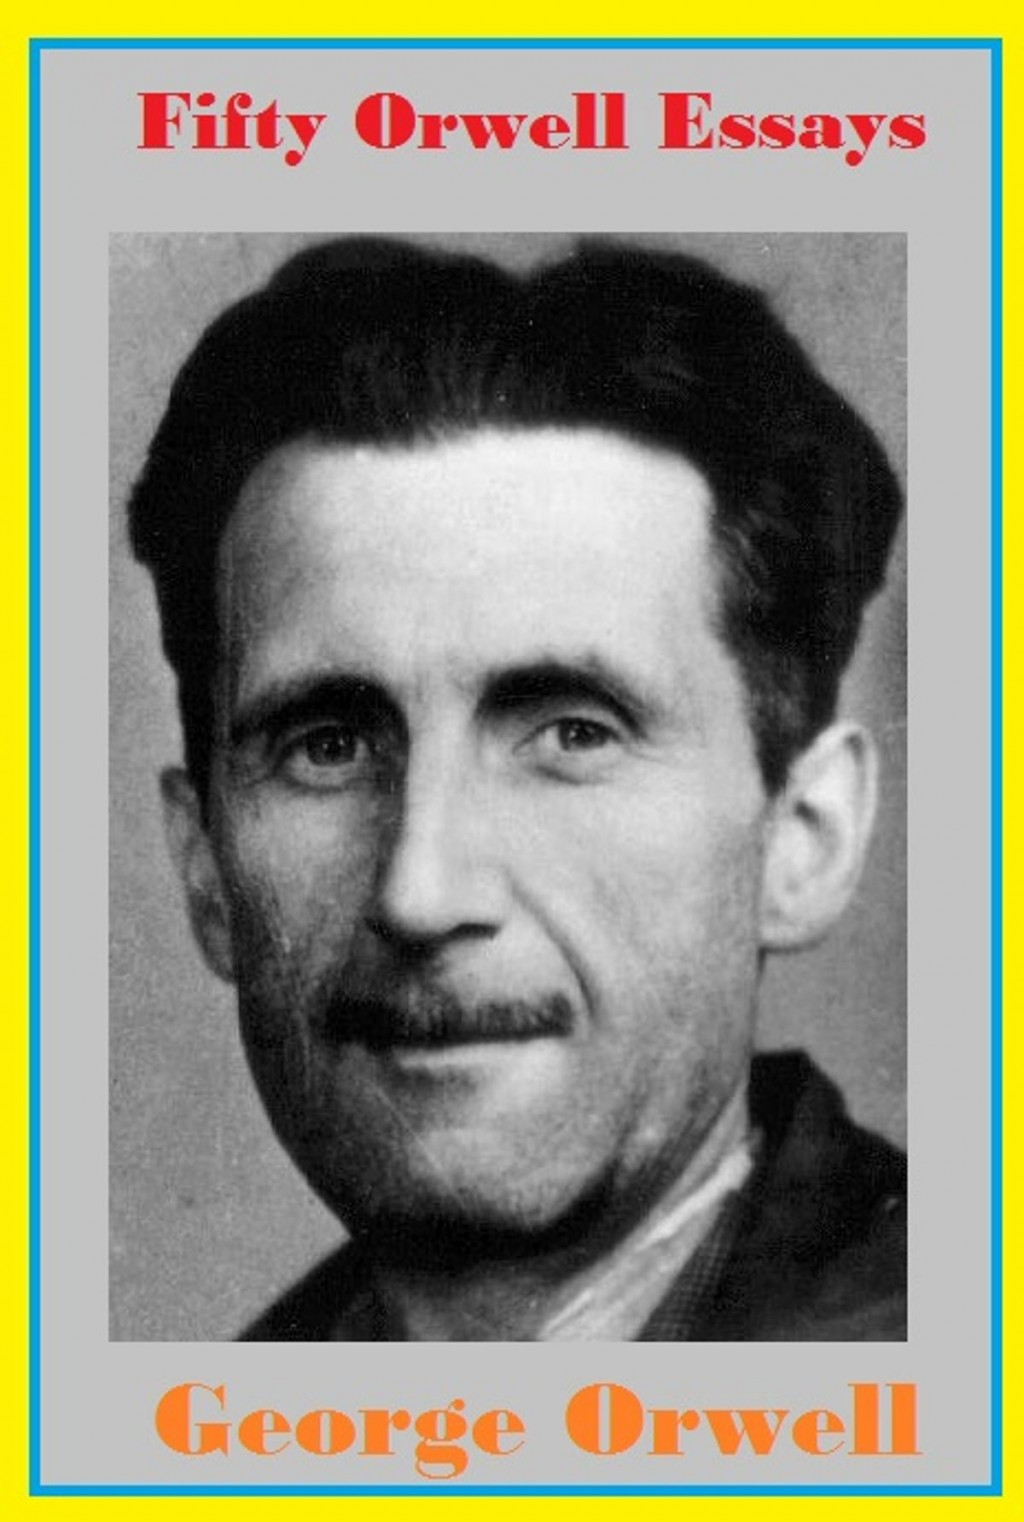 007 Essay Example Fifty Orwell Essays Frightening George 1984 Summary Collected Pdf On Writing Large